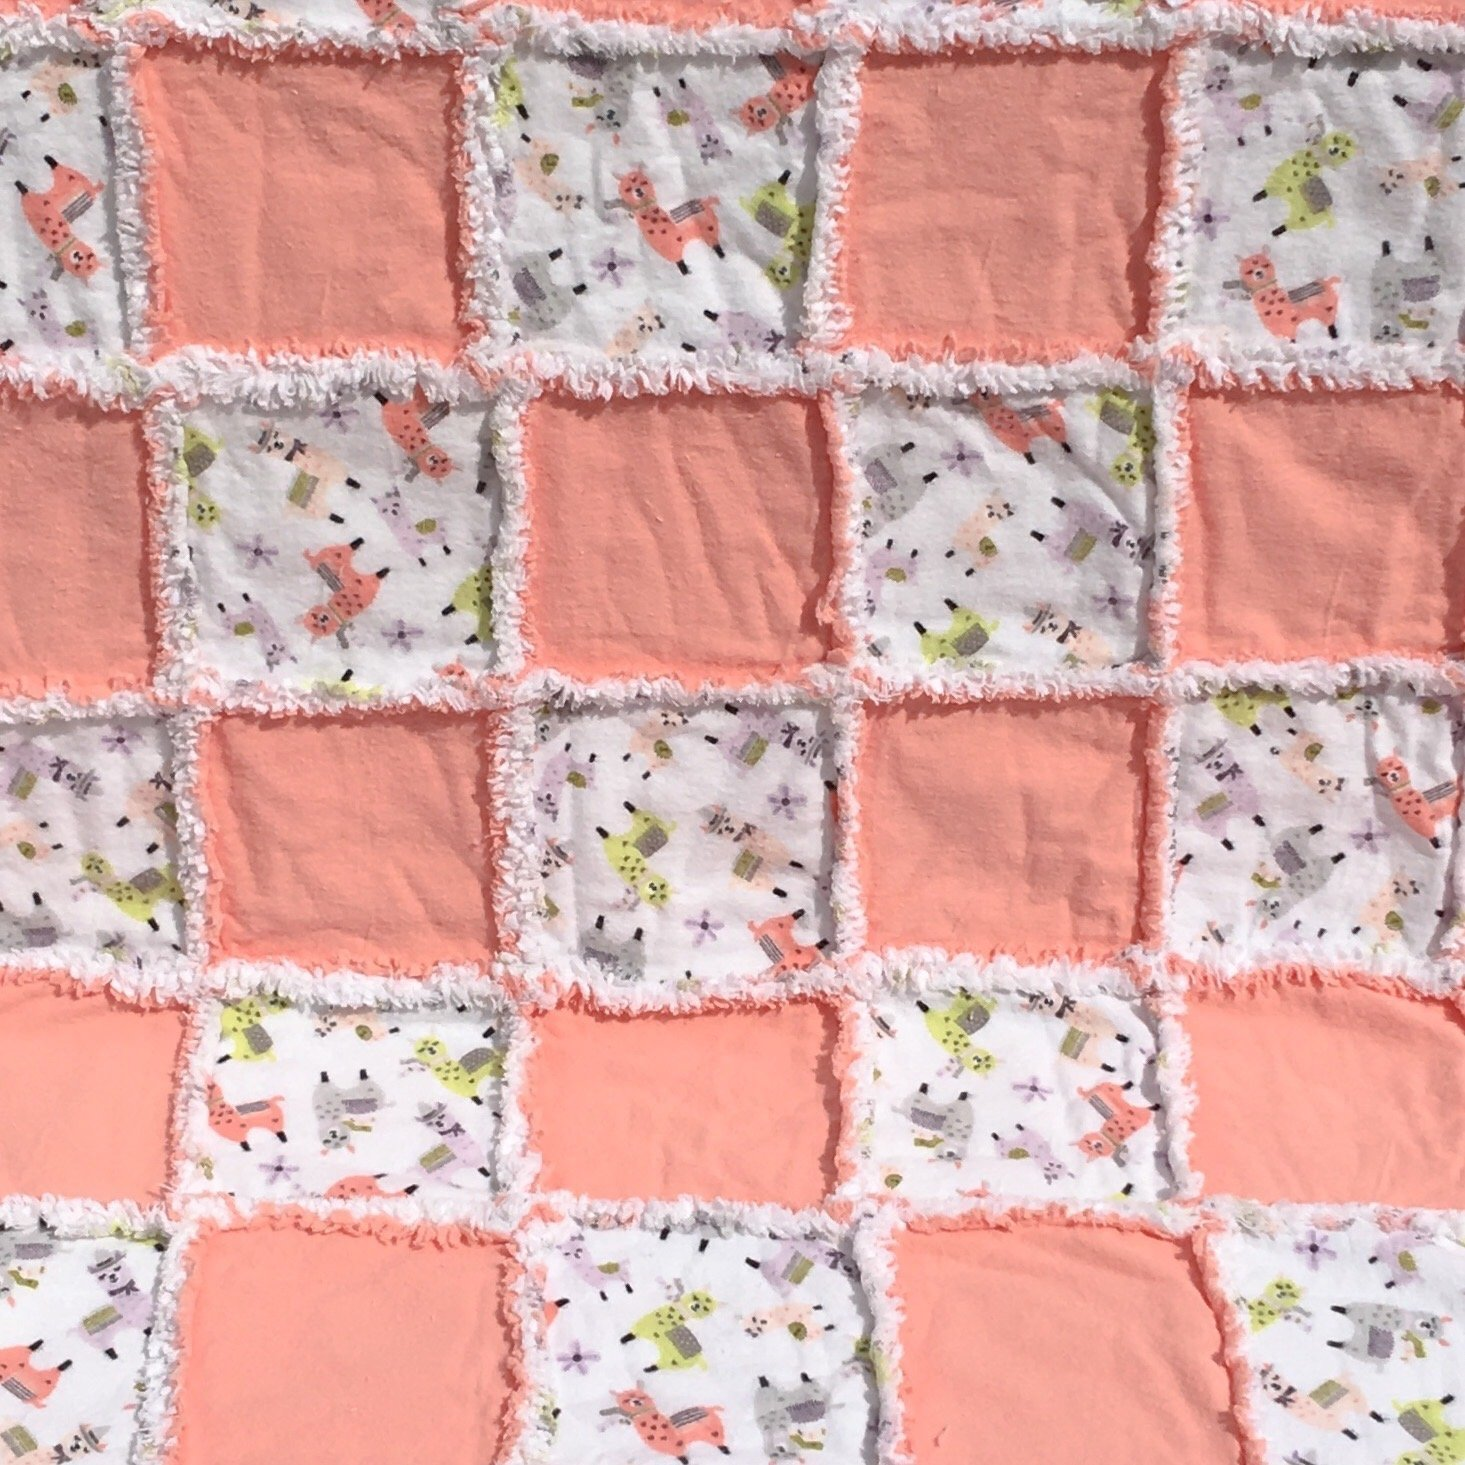 Flannel baby quilt peach with colorful smiling llamas